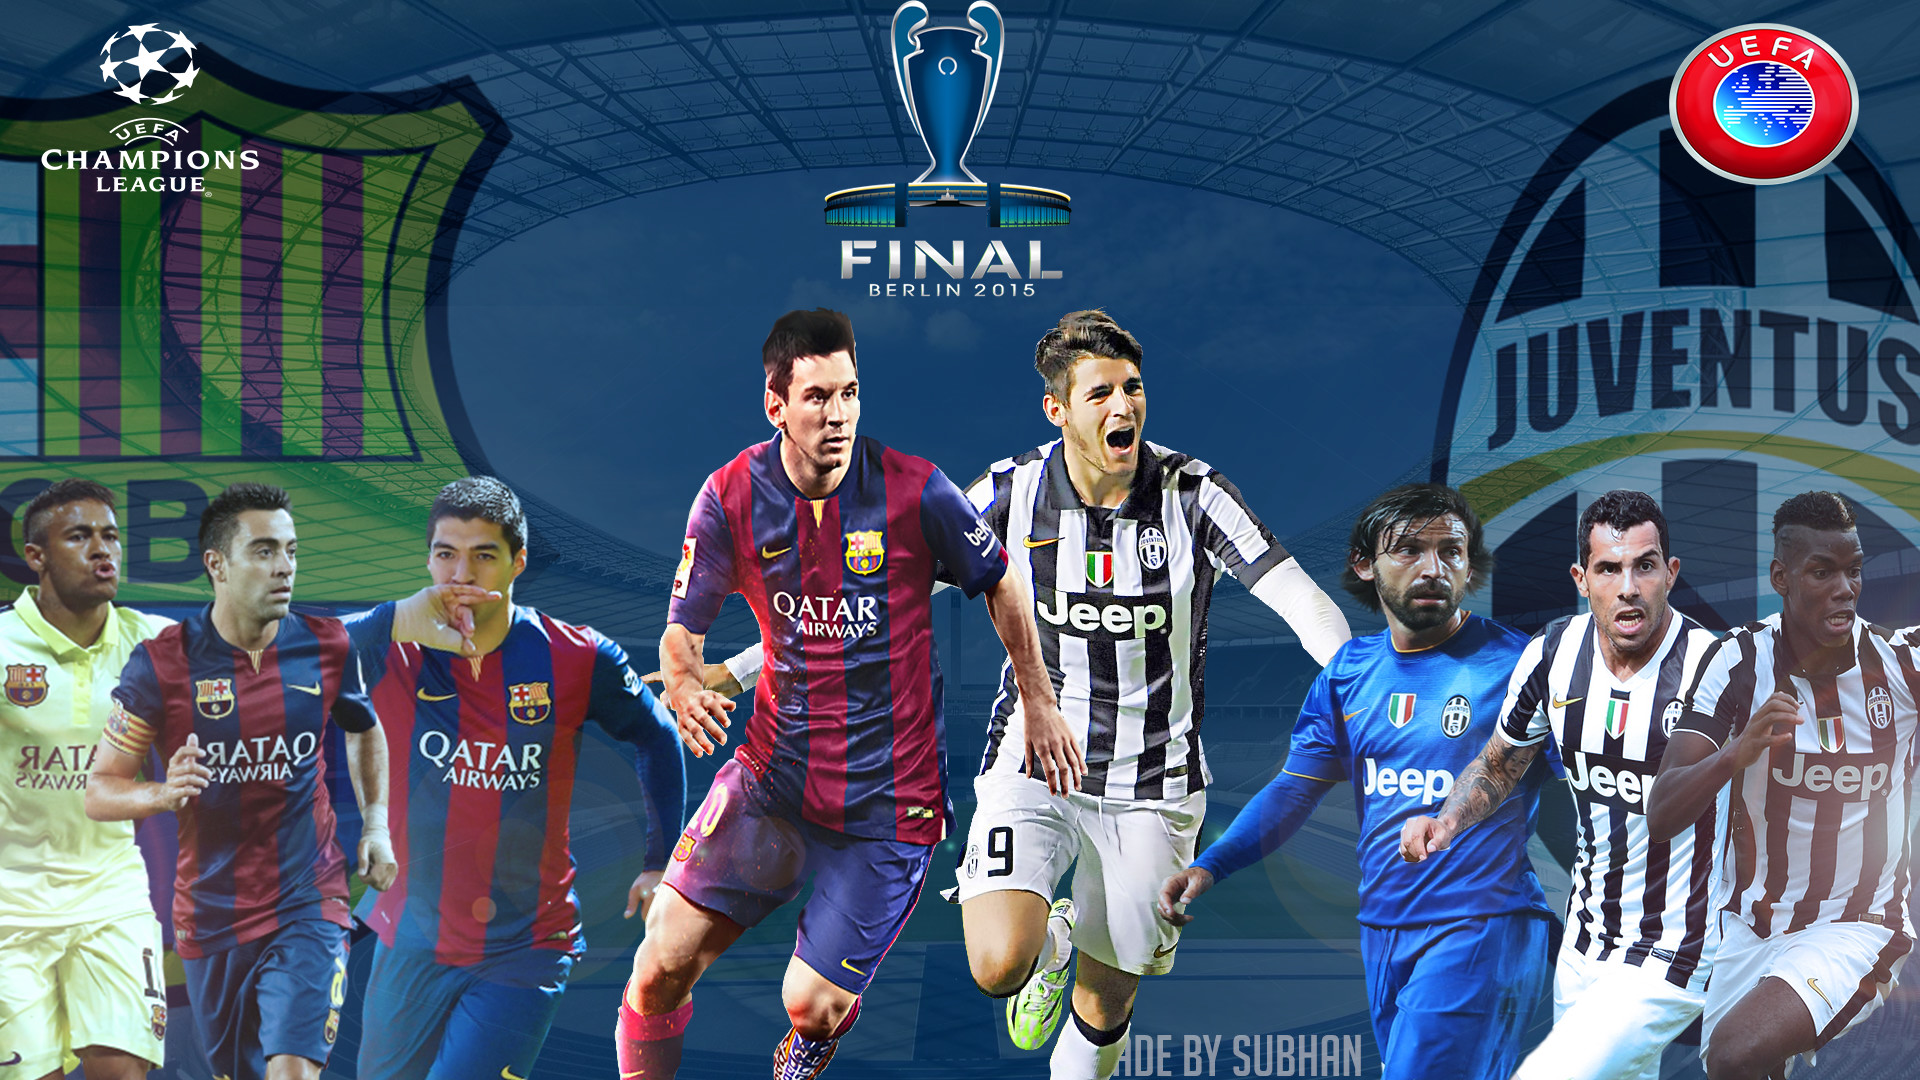 Res: 1920x1080, ... Champions league final 2015 berlin 1080p Wallpaper by subhan22